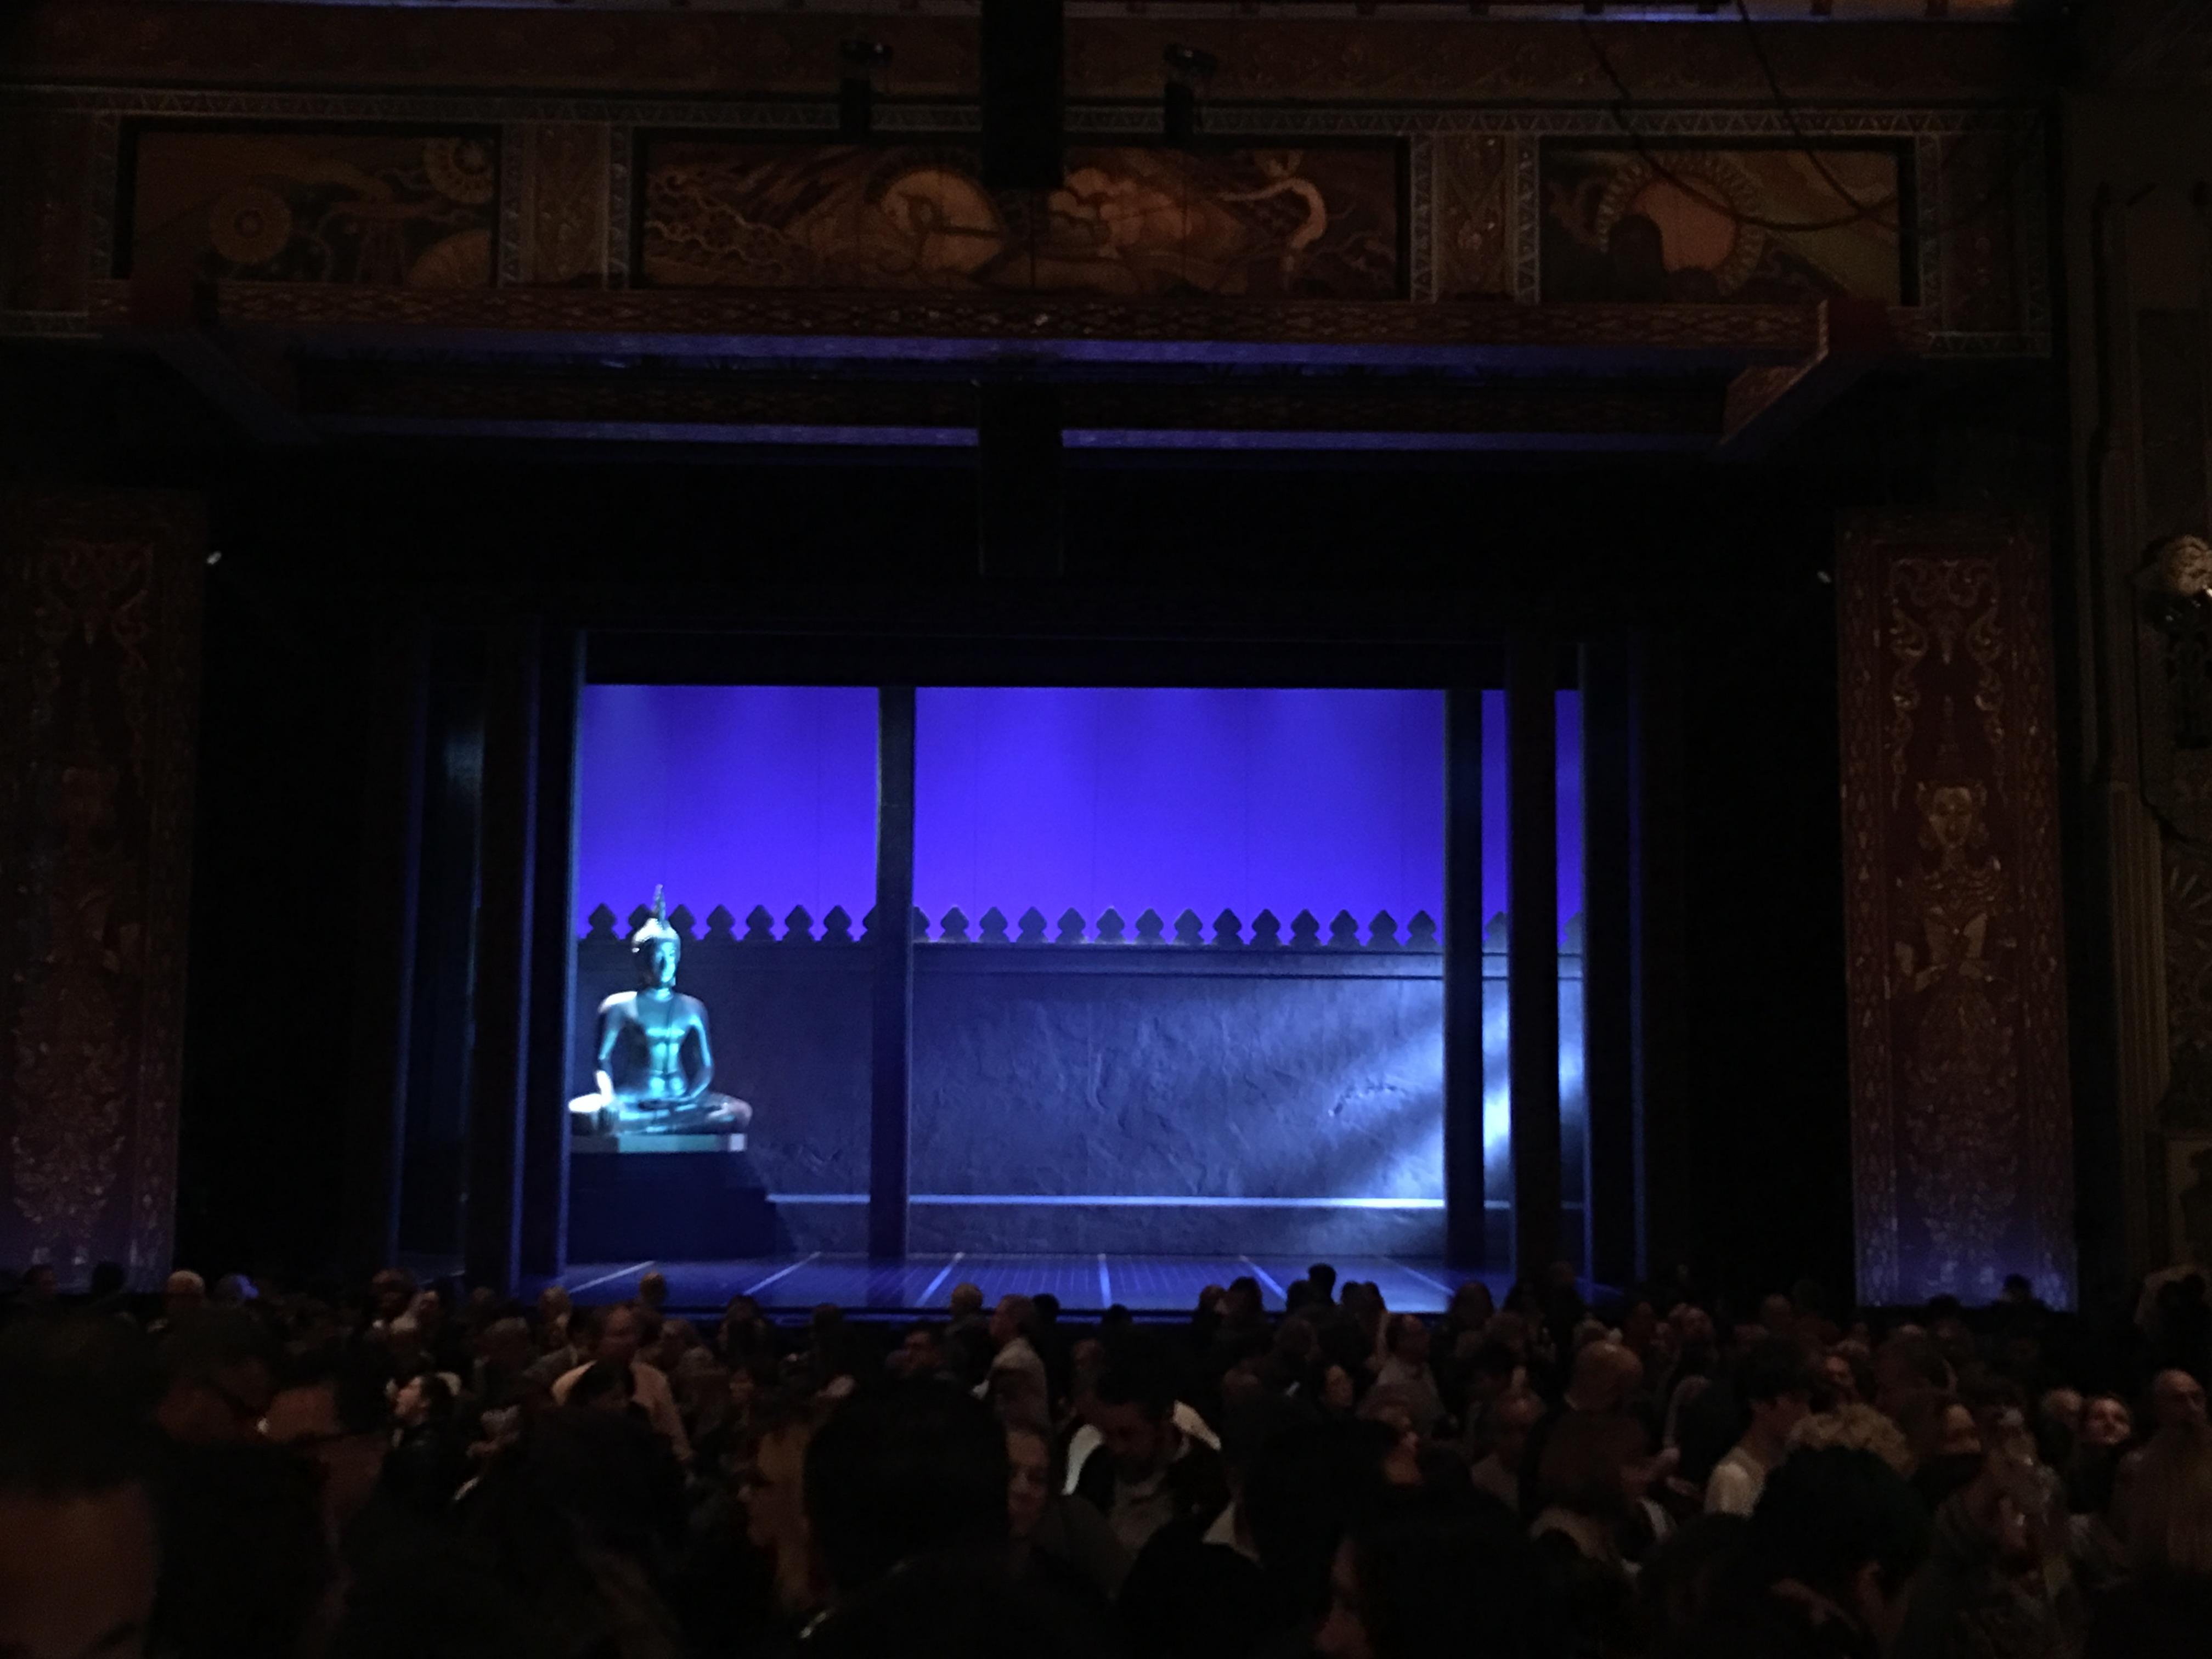 Hollywood Pantages Theatre Section Orchestra C Row NN Seat 106